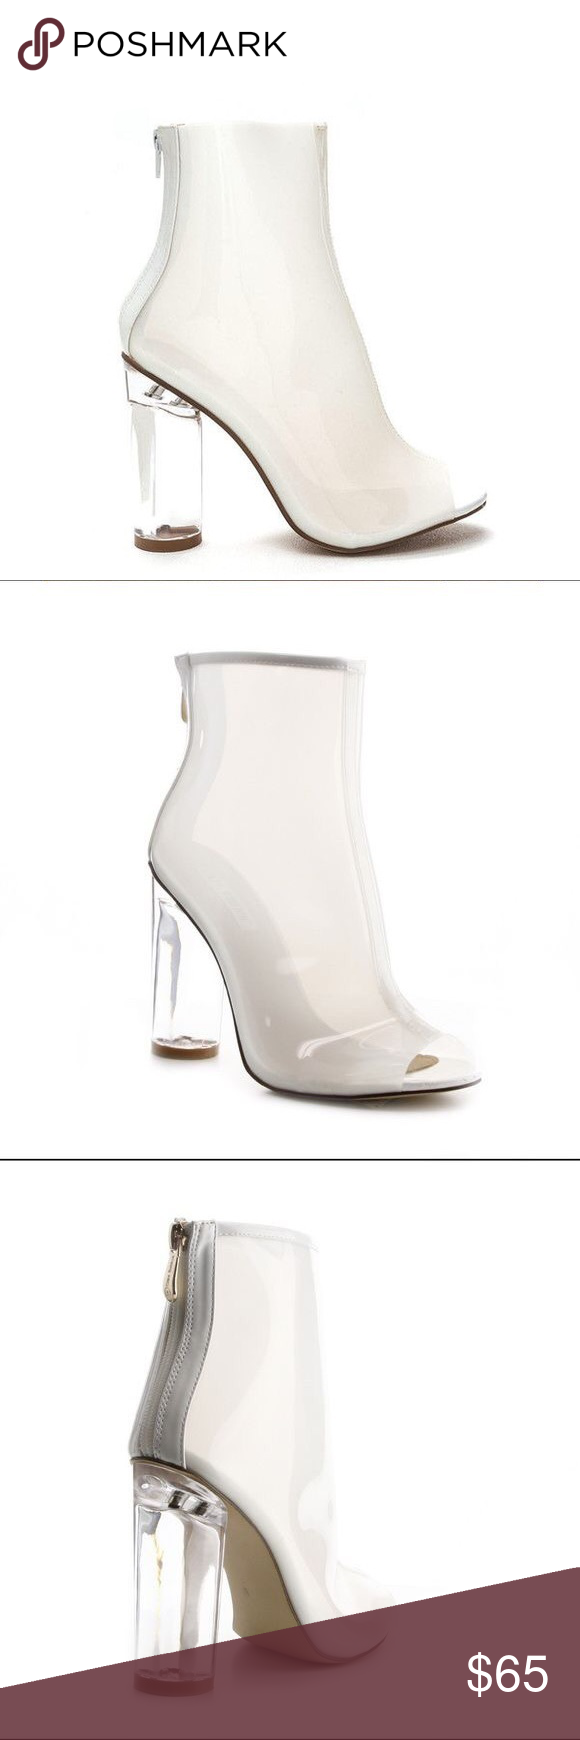 99a82d1609d My cyclinder chic clear white booties Lucite booties, liked polyvore ...